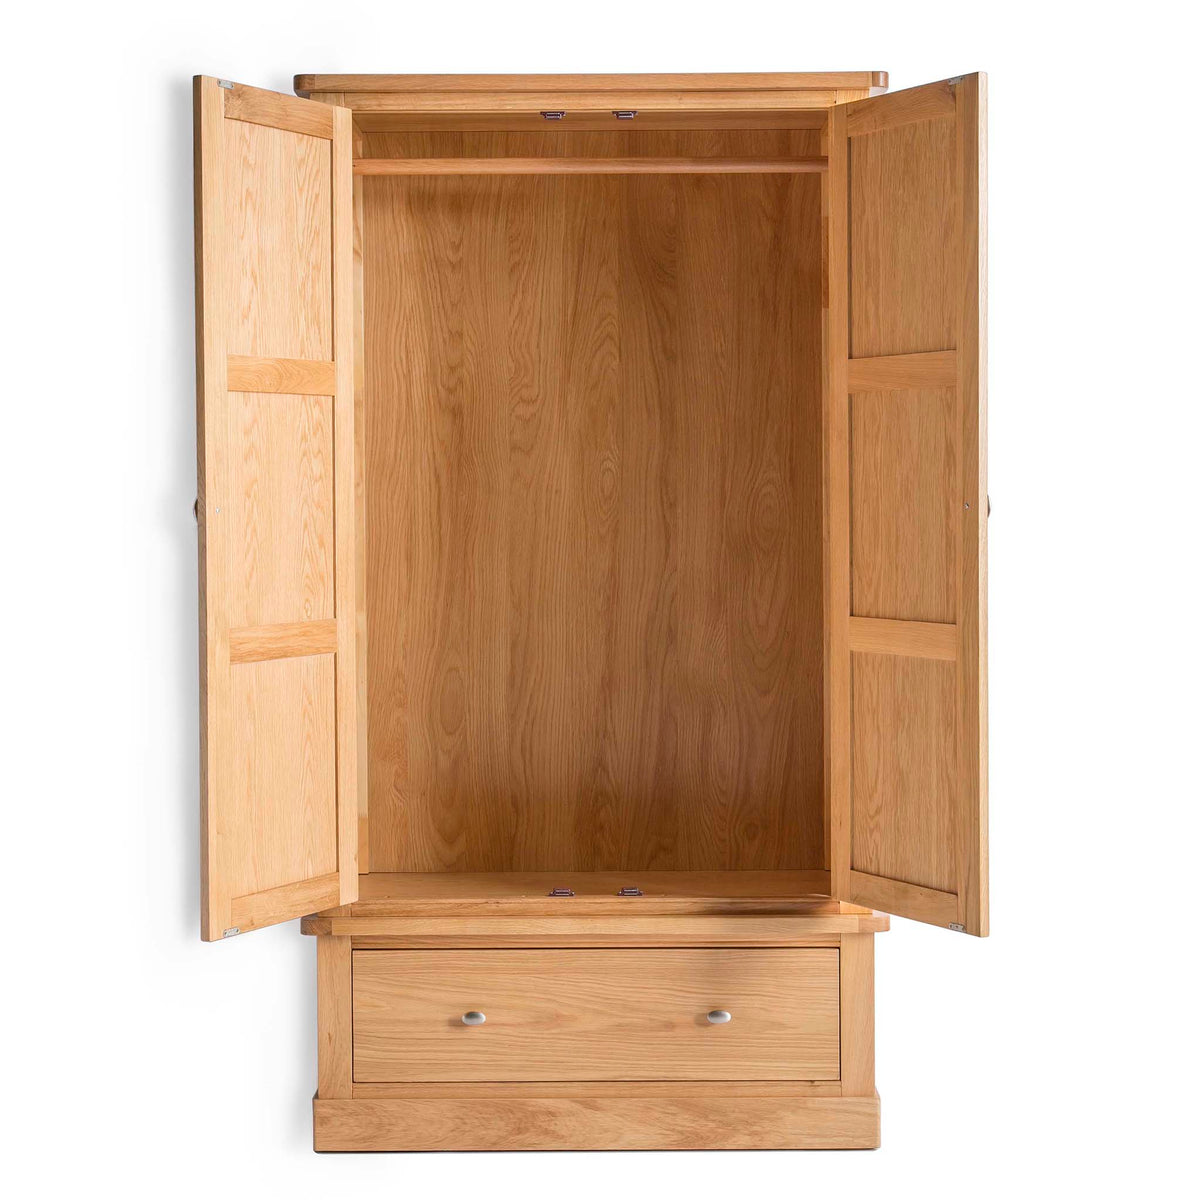 Hampshire Oak Double Wardrobe with Drawer - Front view with wardrobe doors open